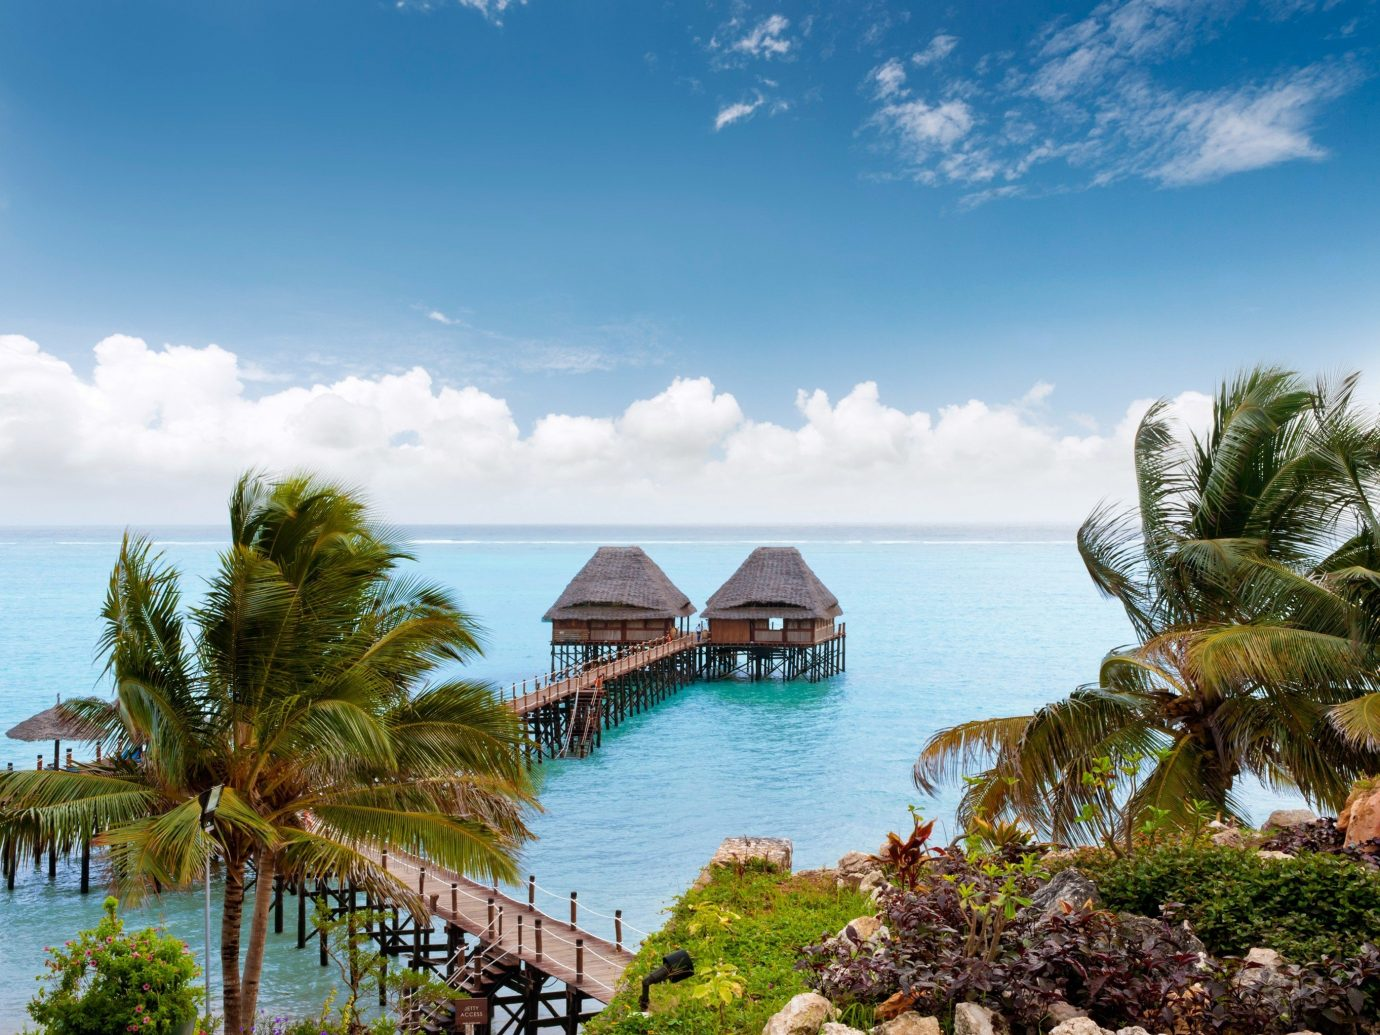 Hotels Offbeat water sky outdoor tree Sea Coast vacation Ocean caribbean Beach Resort tourism shore bay arecales Nature estate tropics Island Lagoon cove cape plant swimming several sandy day